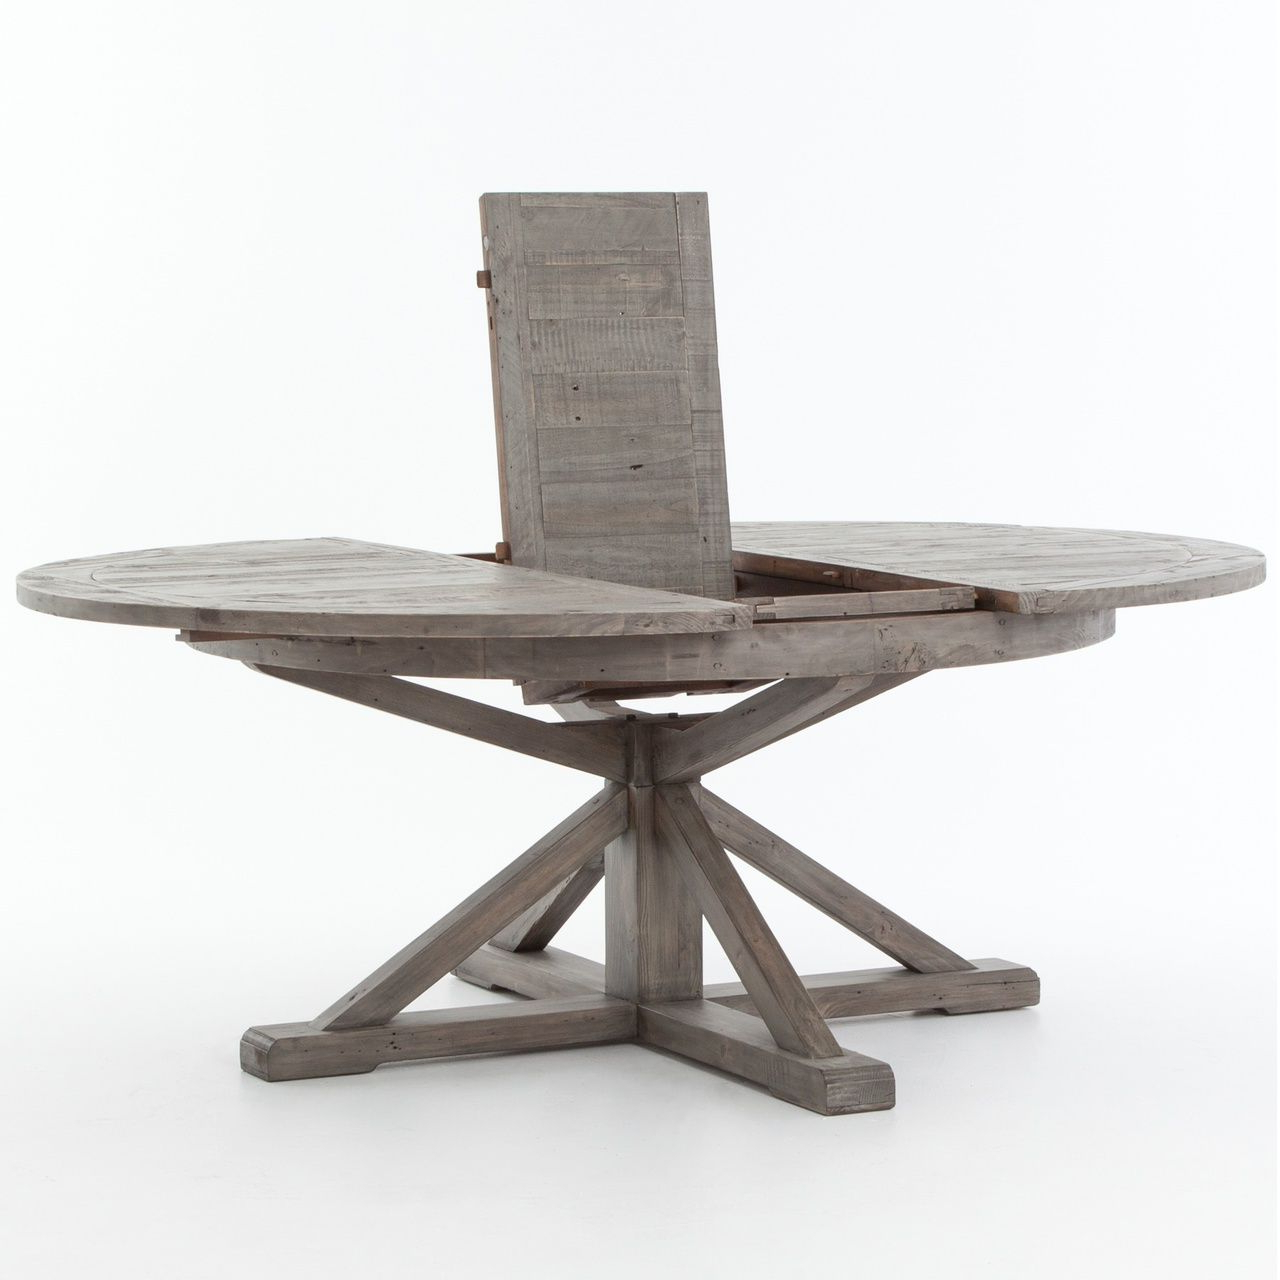 2020 8 Seater Wood Contemporary Dining Tables With Extension Leaf Inside Cintra Reclaimed Wood Extending Round Dining Table (View 6 of 25)